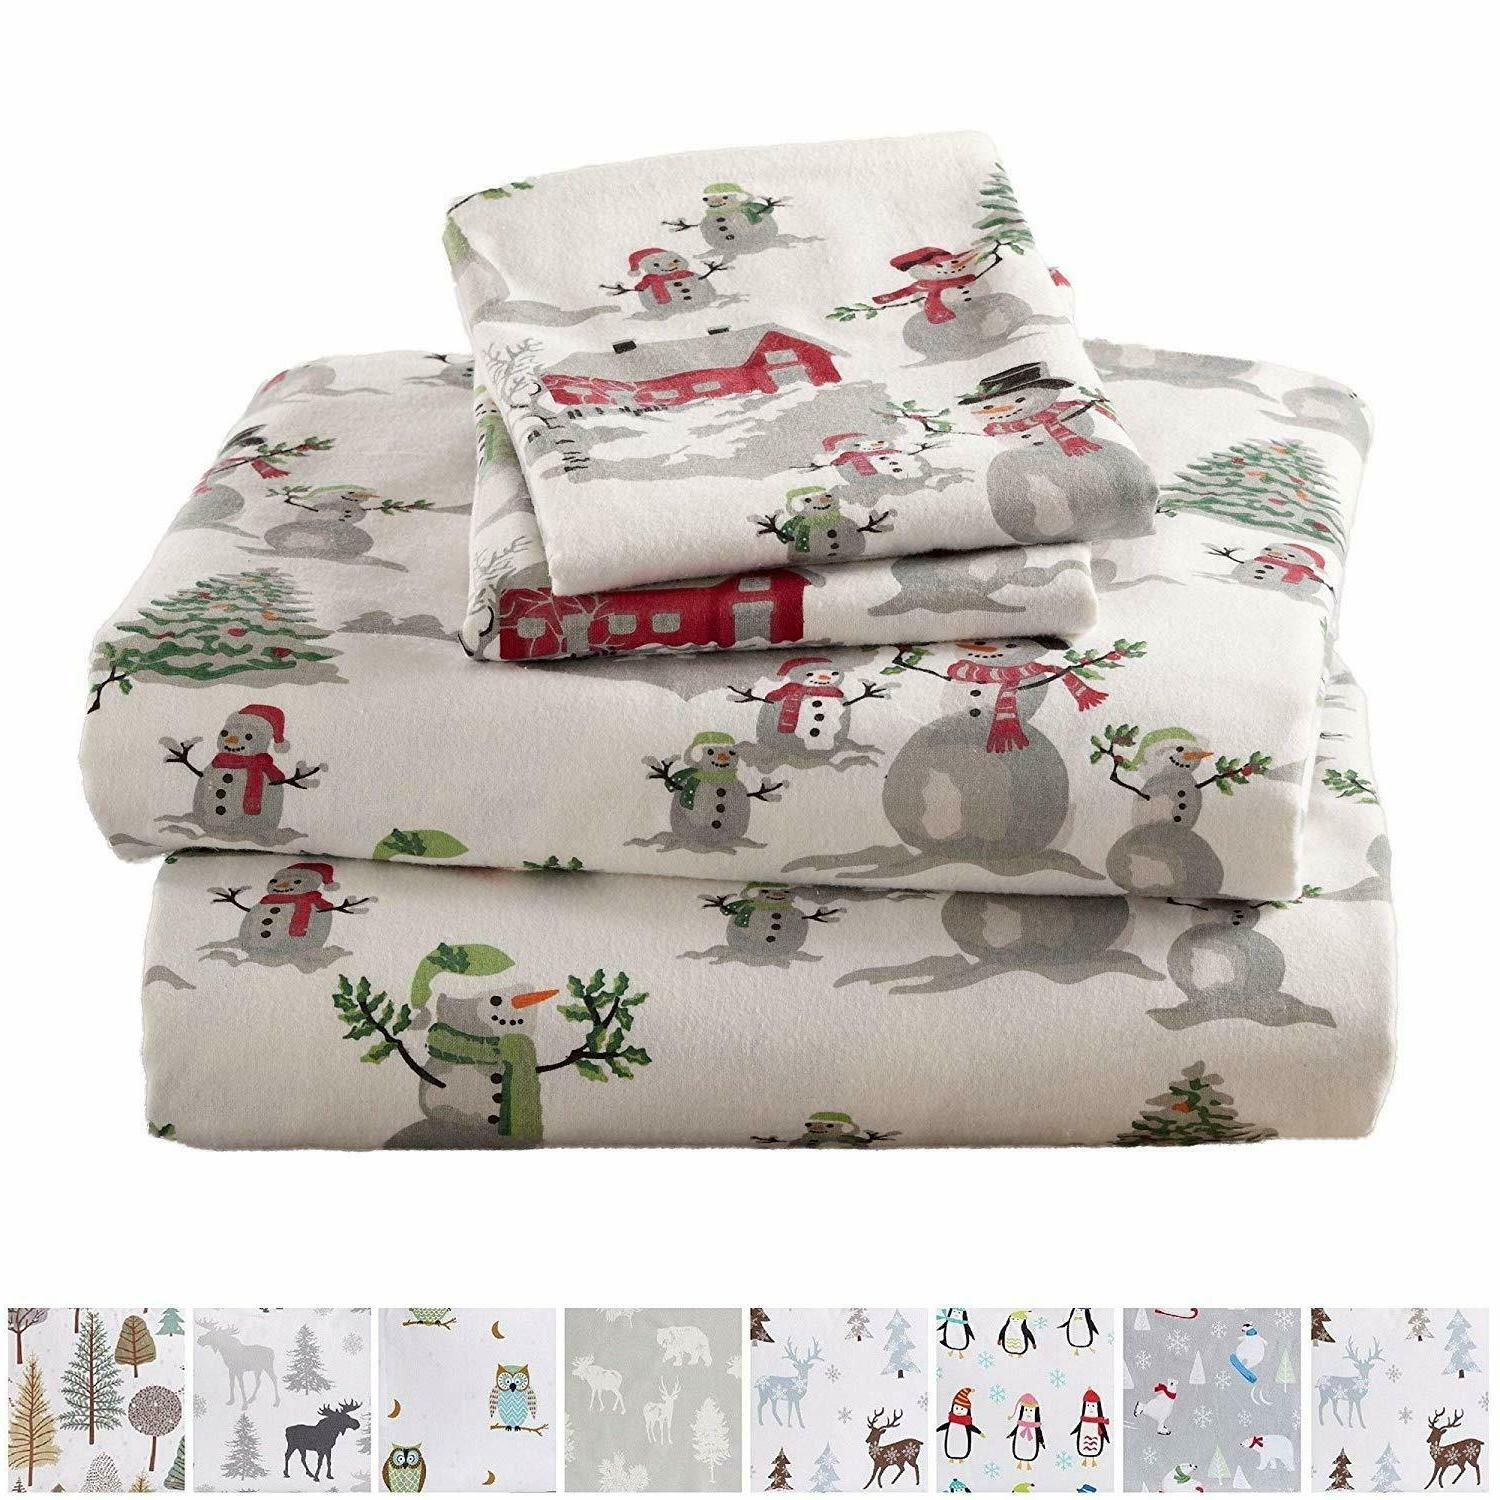 Warm Winter Christmas Bed Sheets 100% Turkish Cotton